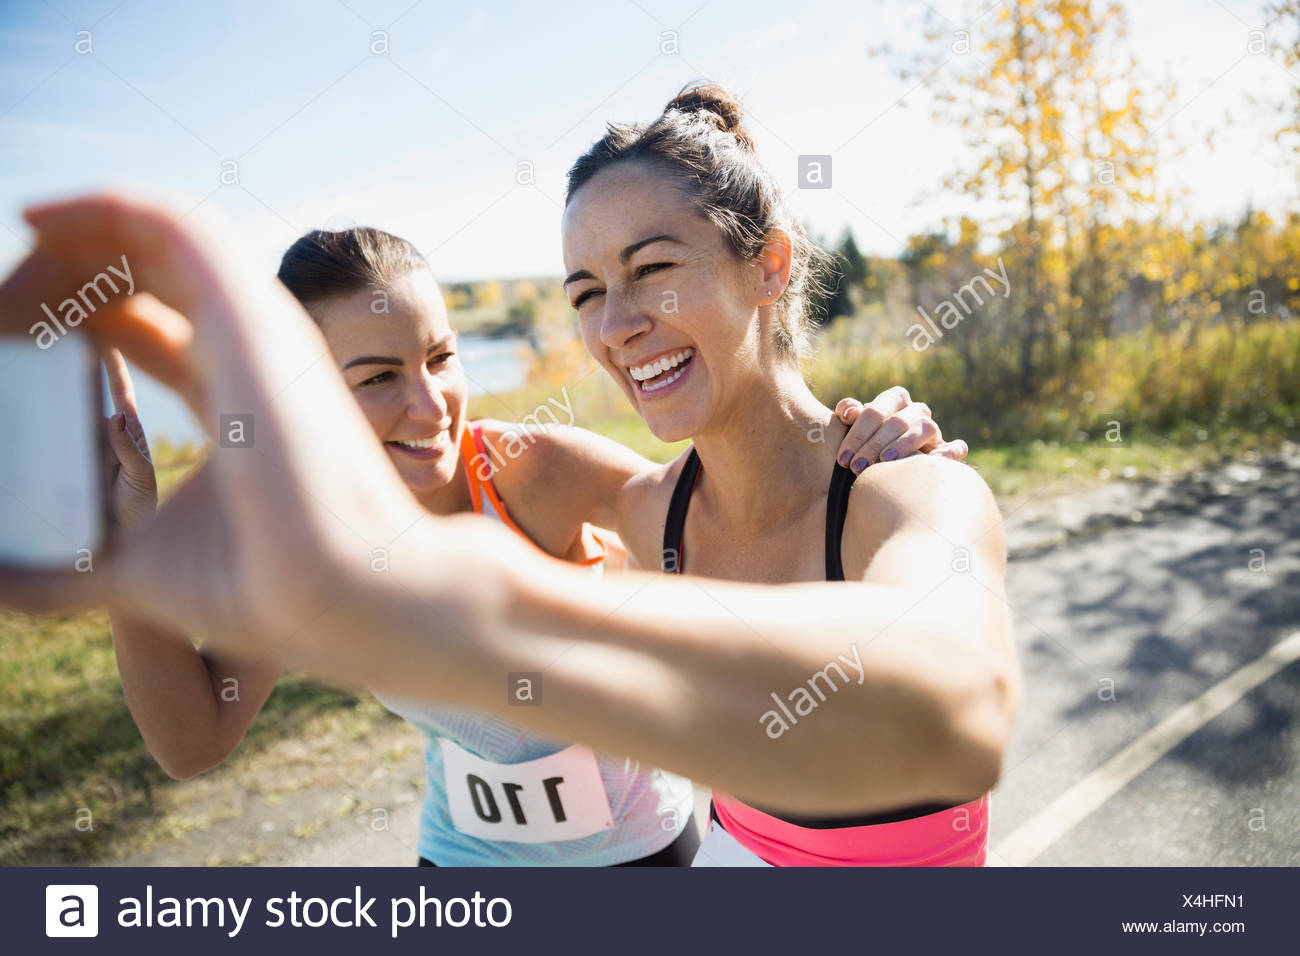 Laughing runners taking selfie on sunny path - Stock Image